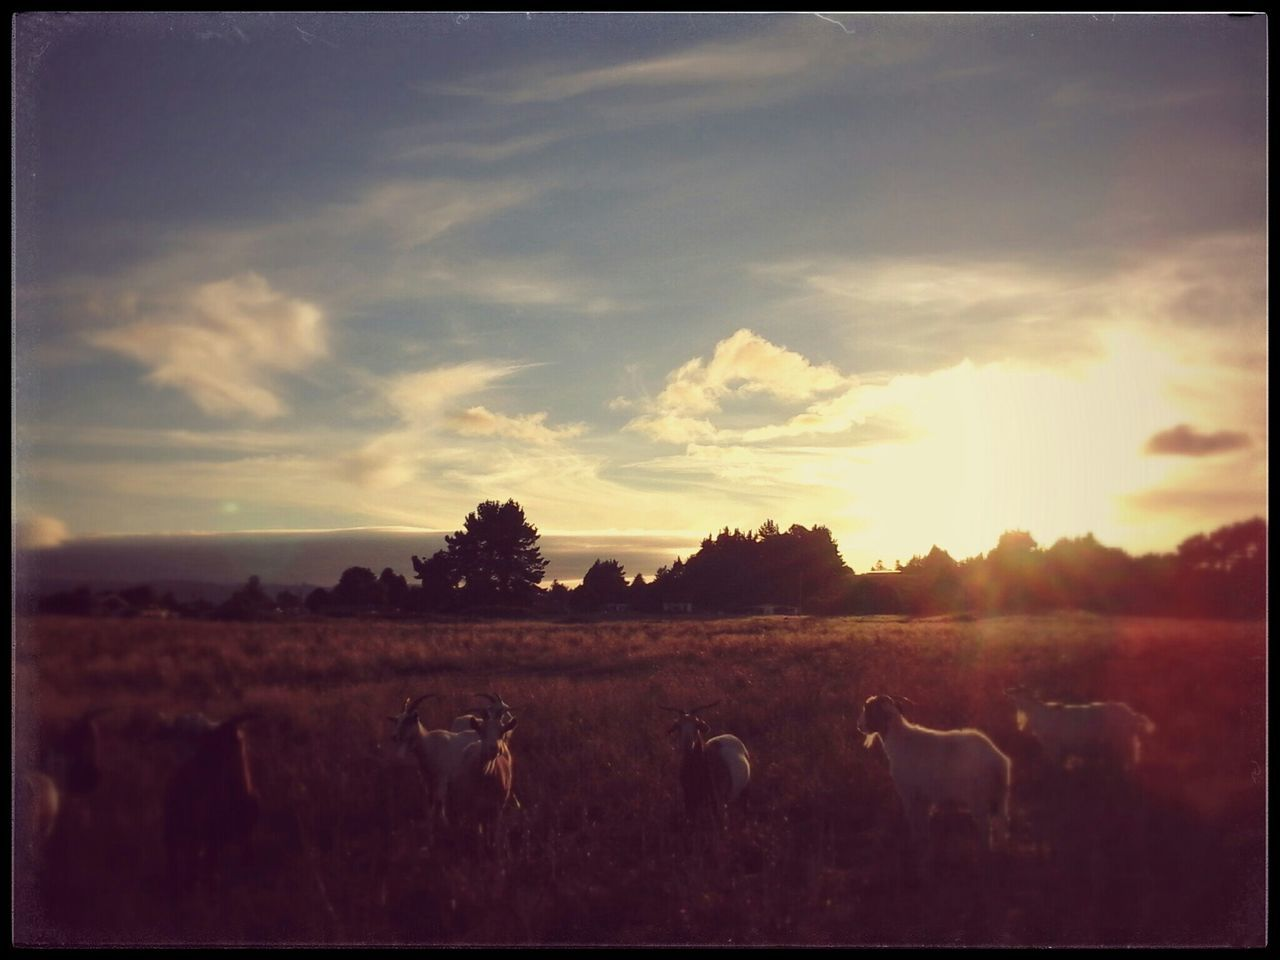 sky, animal themes, landscape, nature, no people, cloud - sky, outdoors, field, sunset, domestic animals, scenics, livestock, mammal, tranquility, tree, animals in the wild, beauty in nature, day